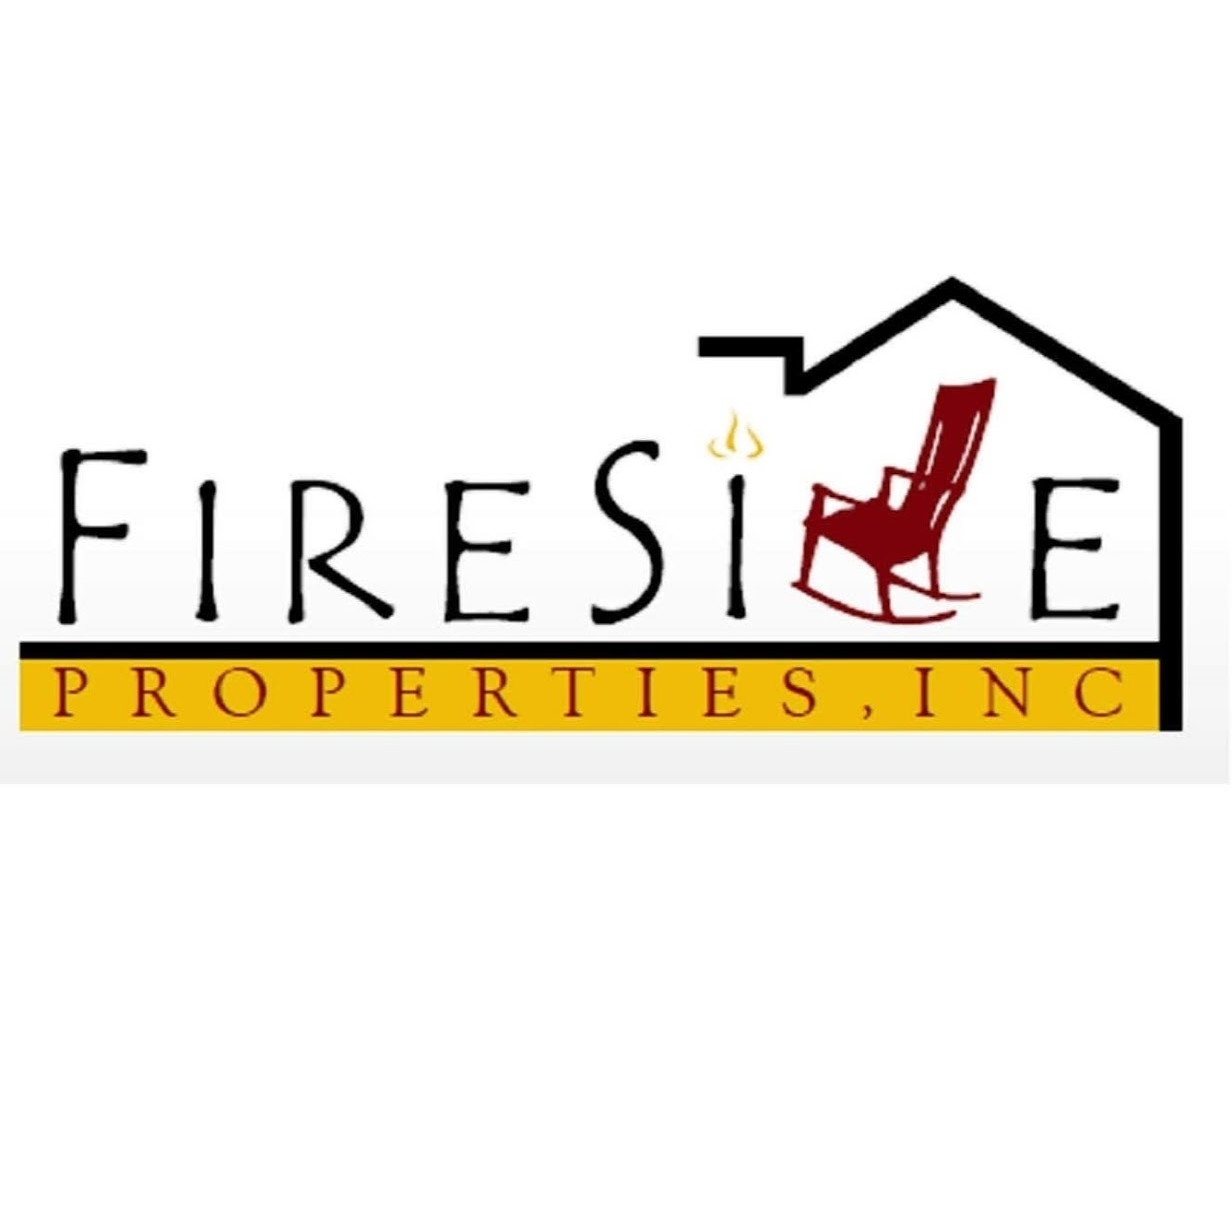 Fireside Properties, Inc.